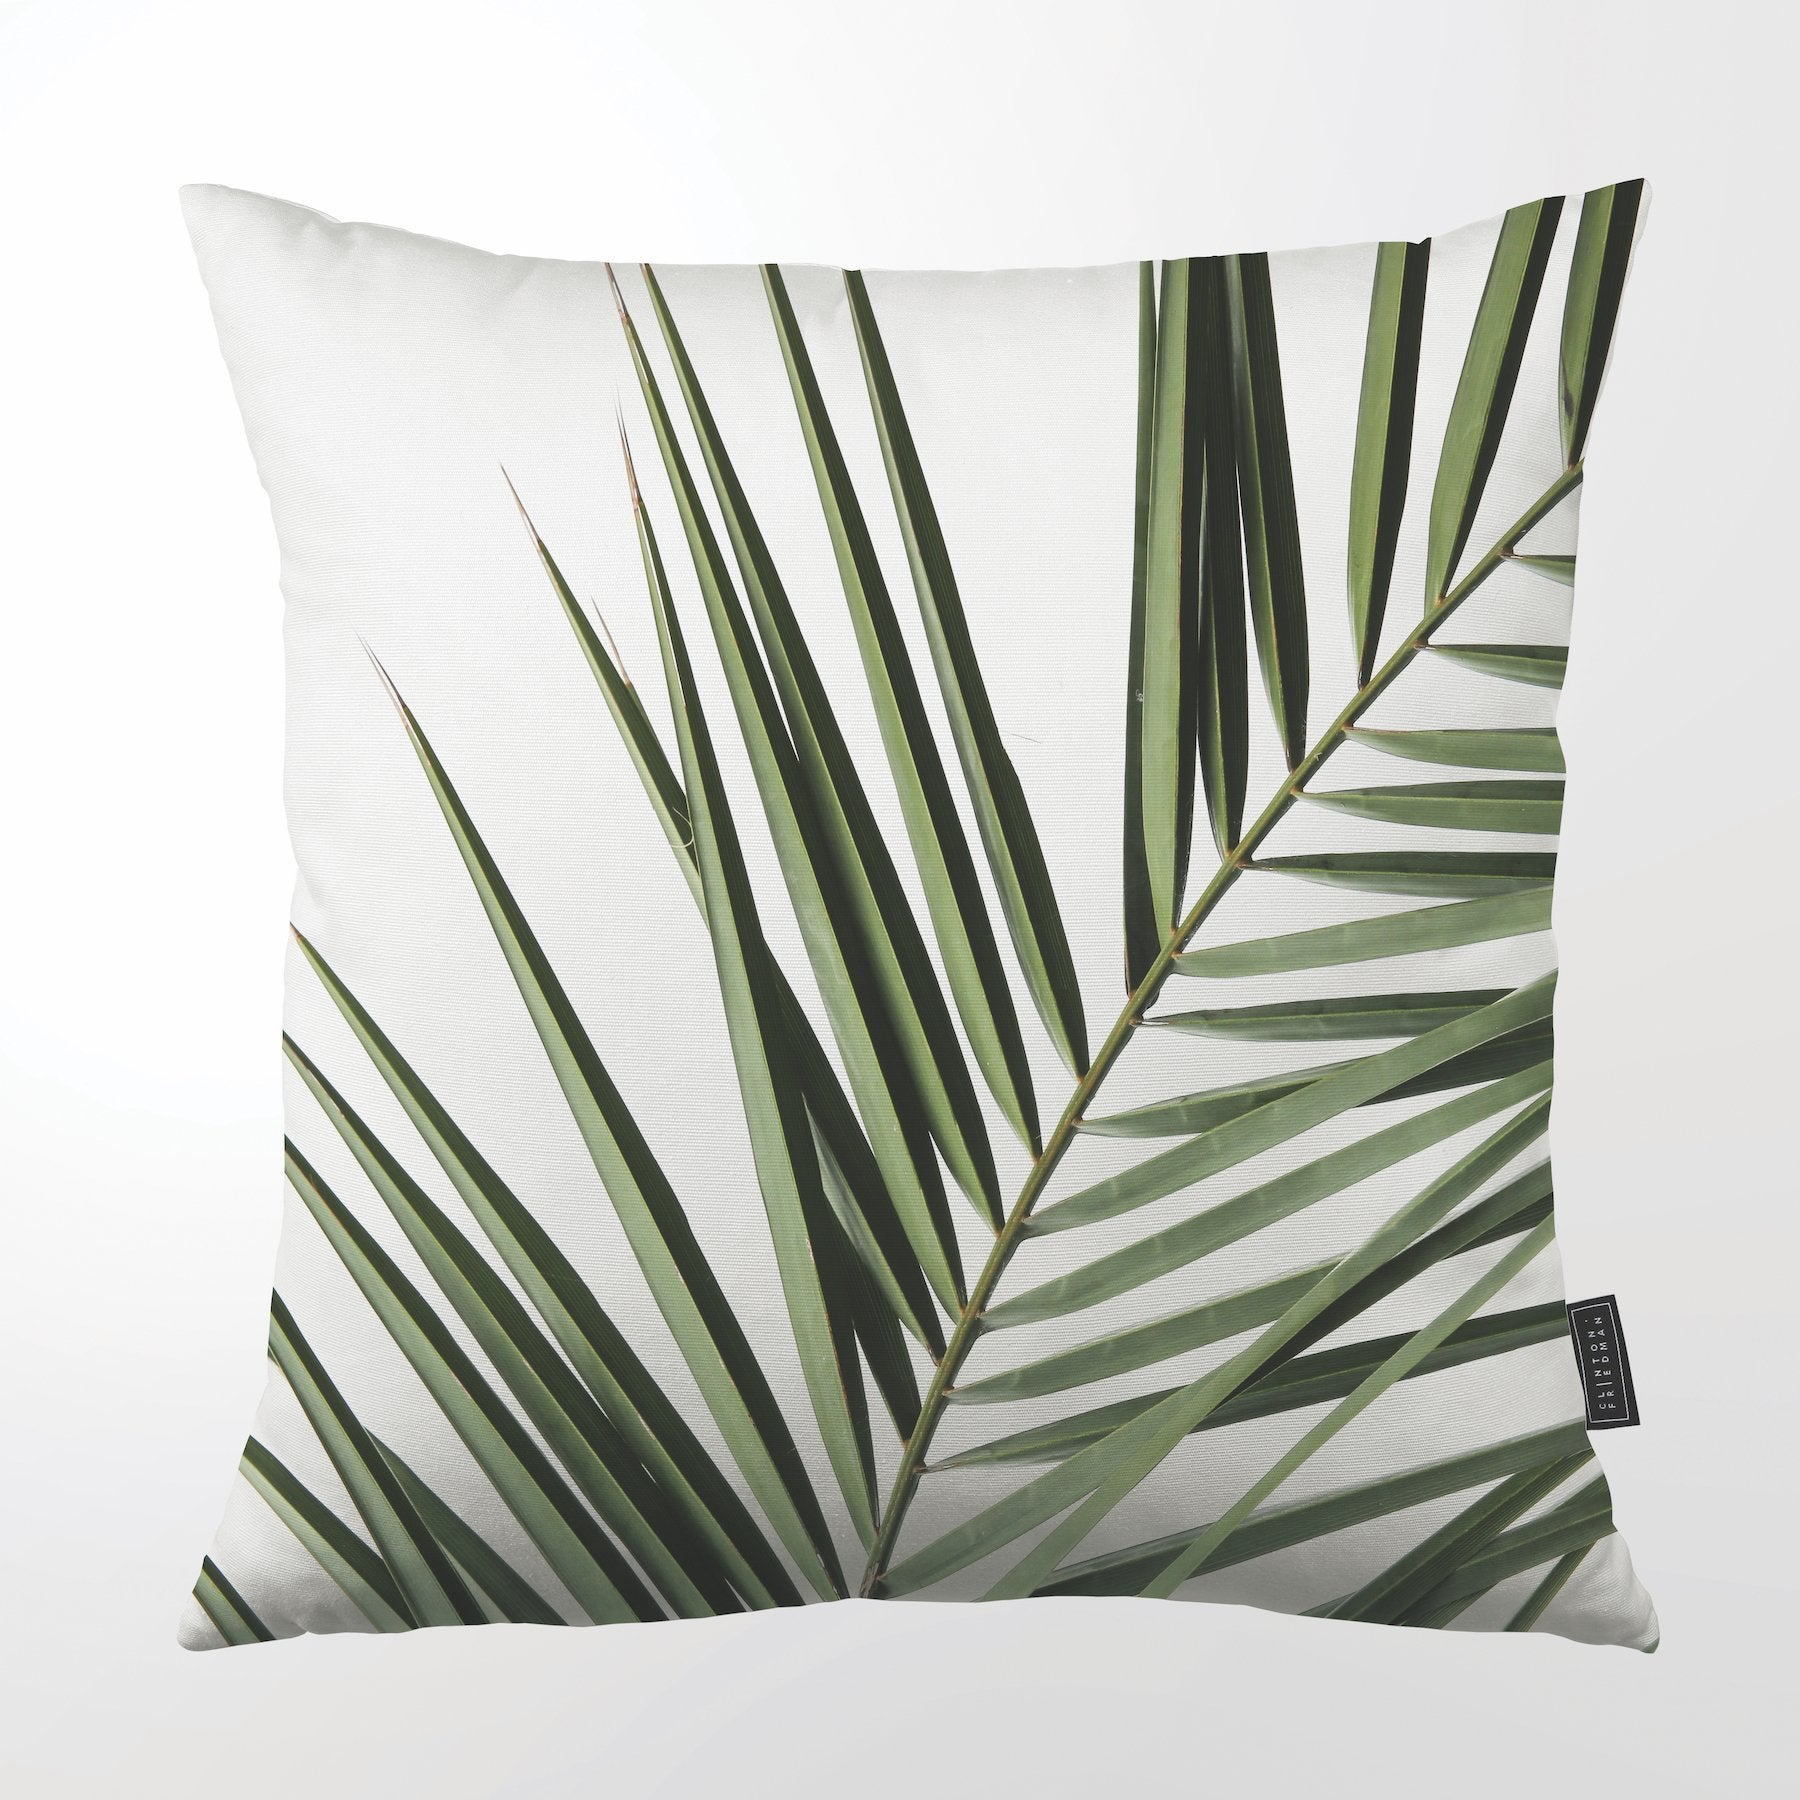 CLINTON FRIEDMAN USA NEW YORK COASTAL PALM FROND 1 THROW PILLOW